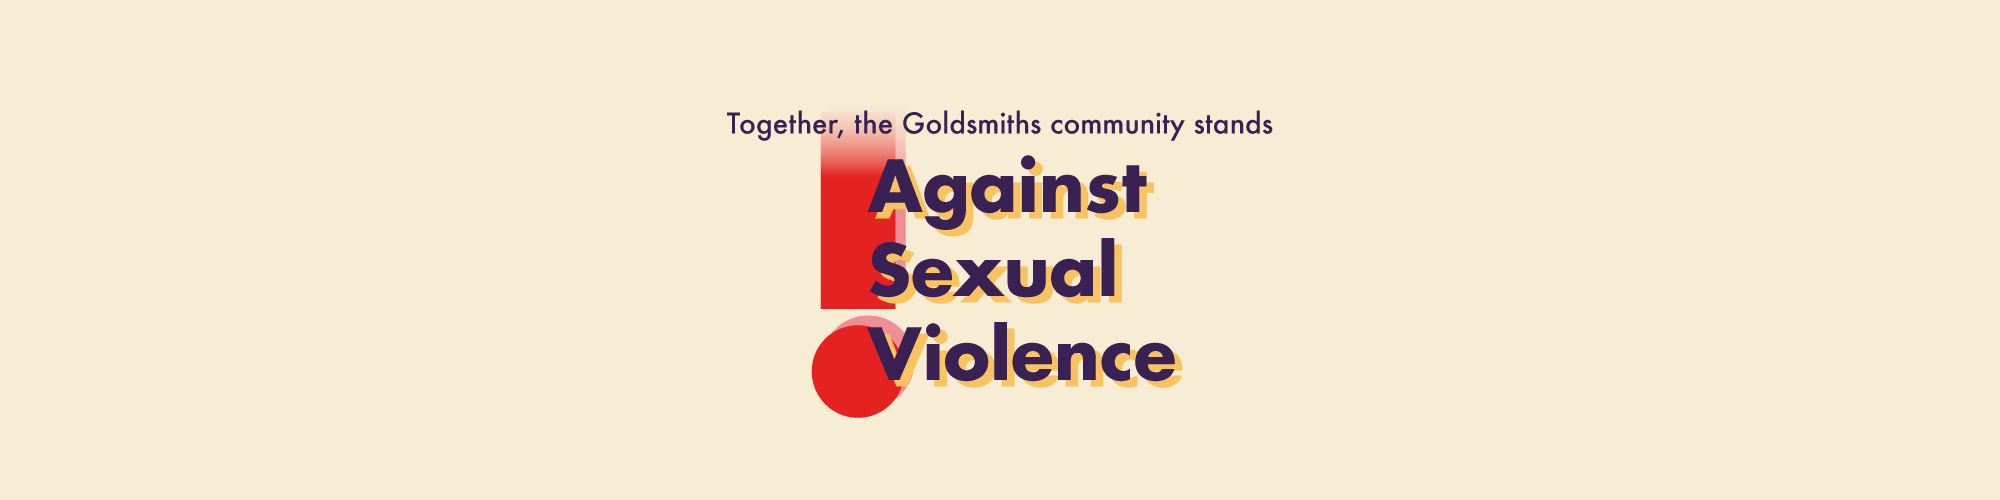 UCU Strike x Against Sexual Violence: Active Bystander Training Teach-Out